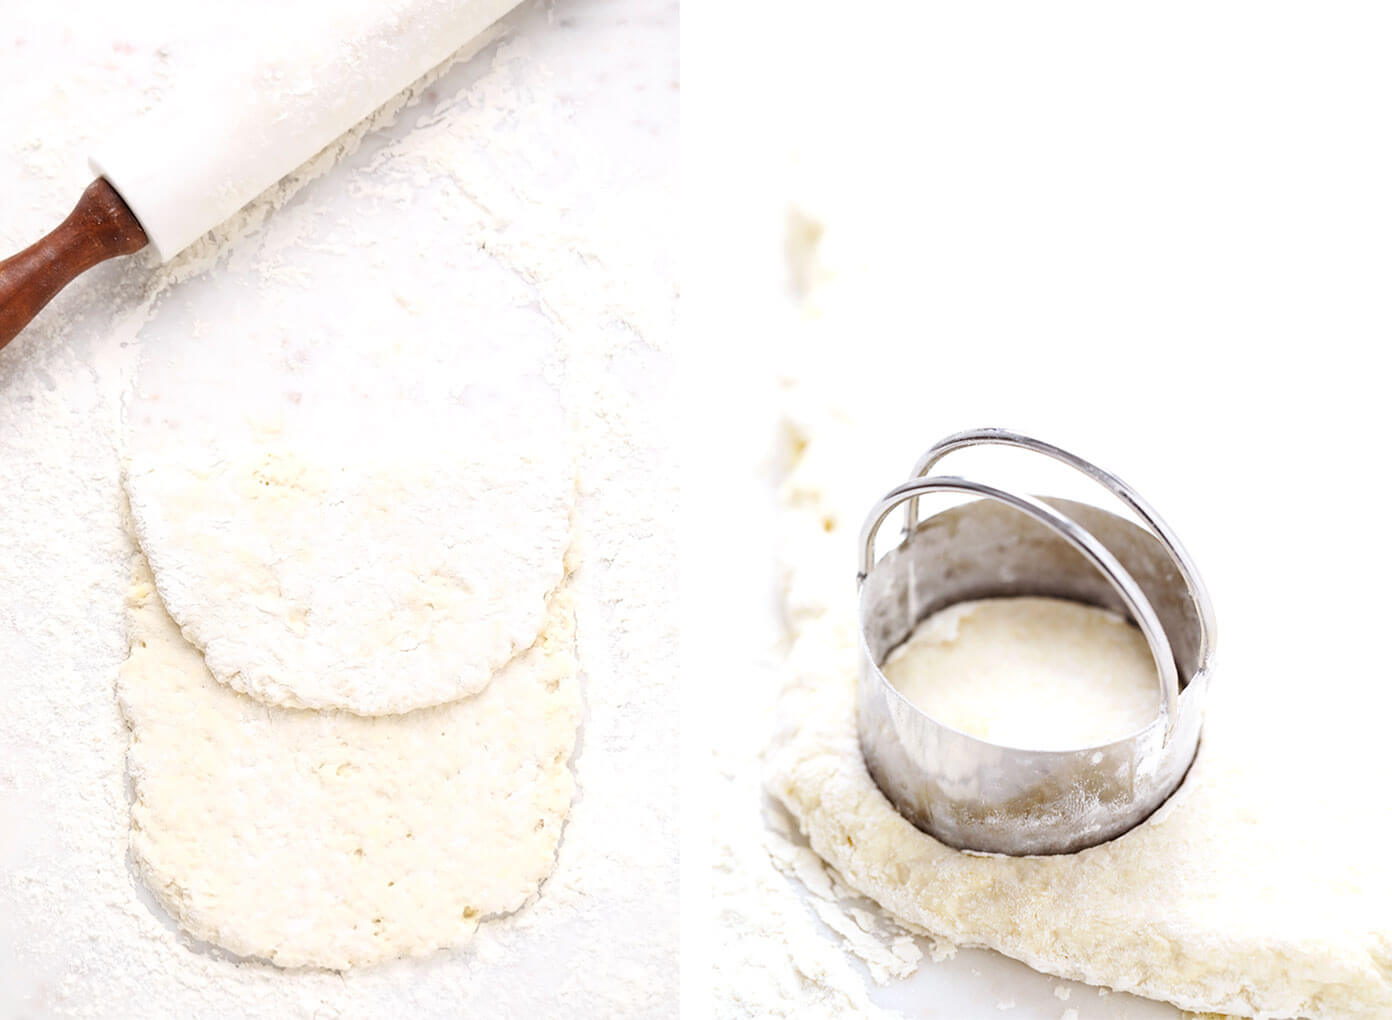 Rolling out biscuit dough and cutting with a biscuit cutter